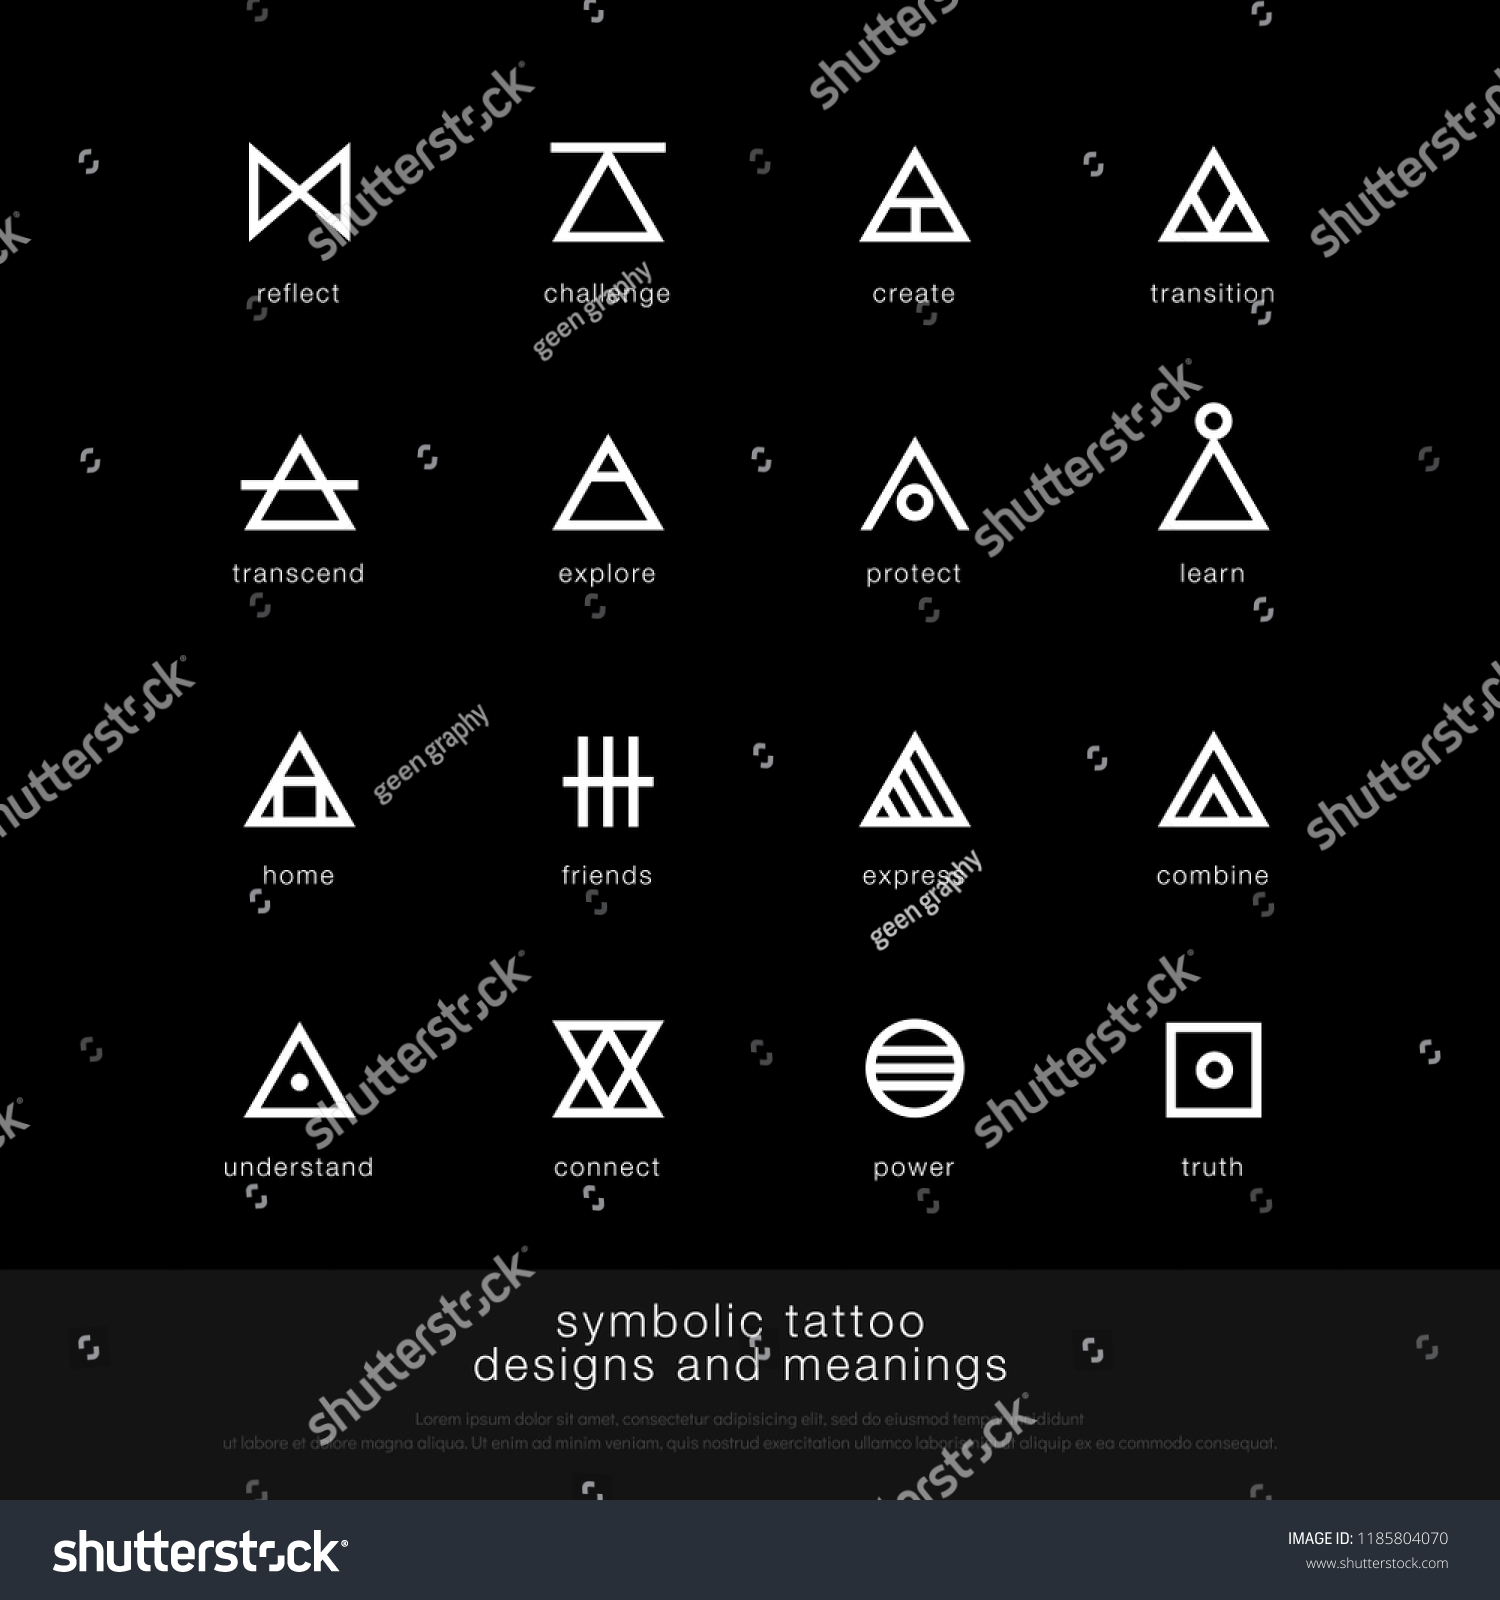 Symbolic Tattoo Design Meaning Minimalist Graphic Stock Vector